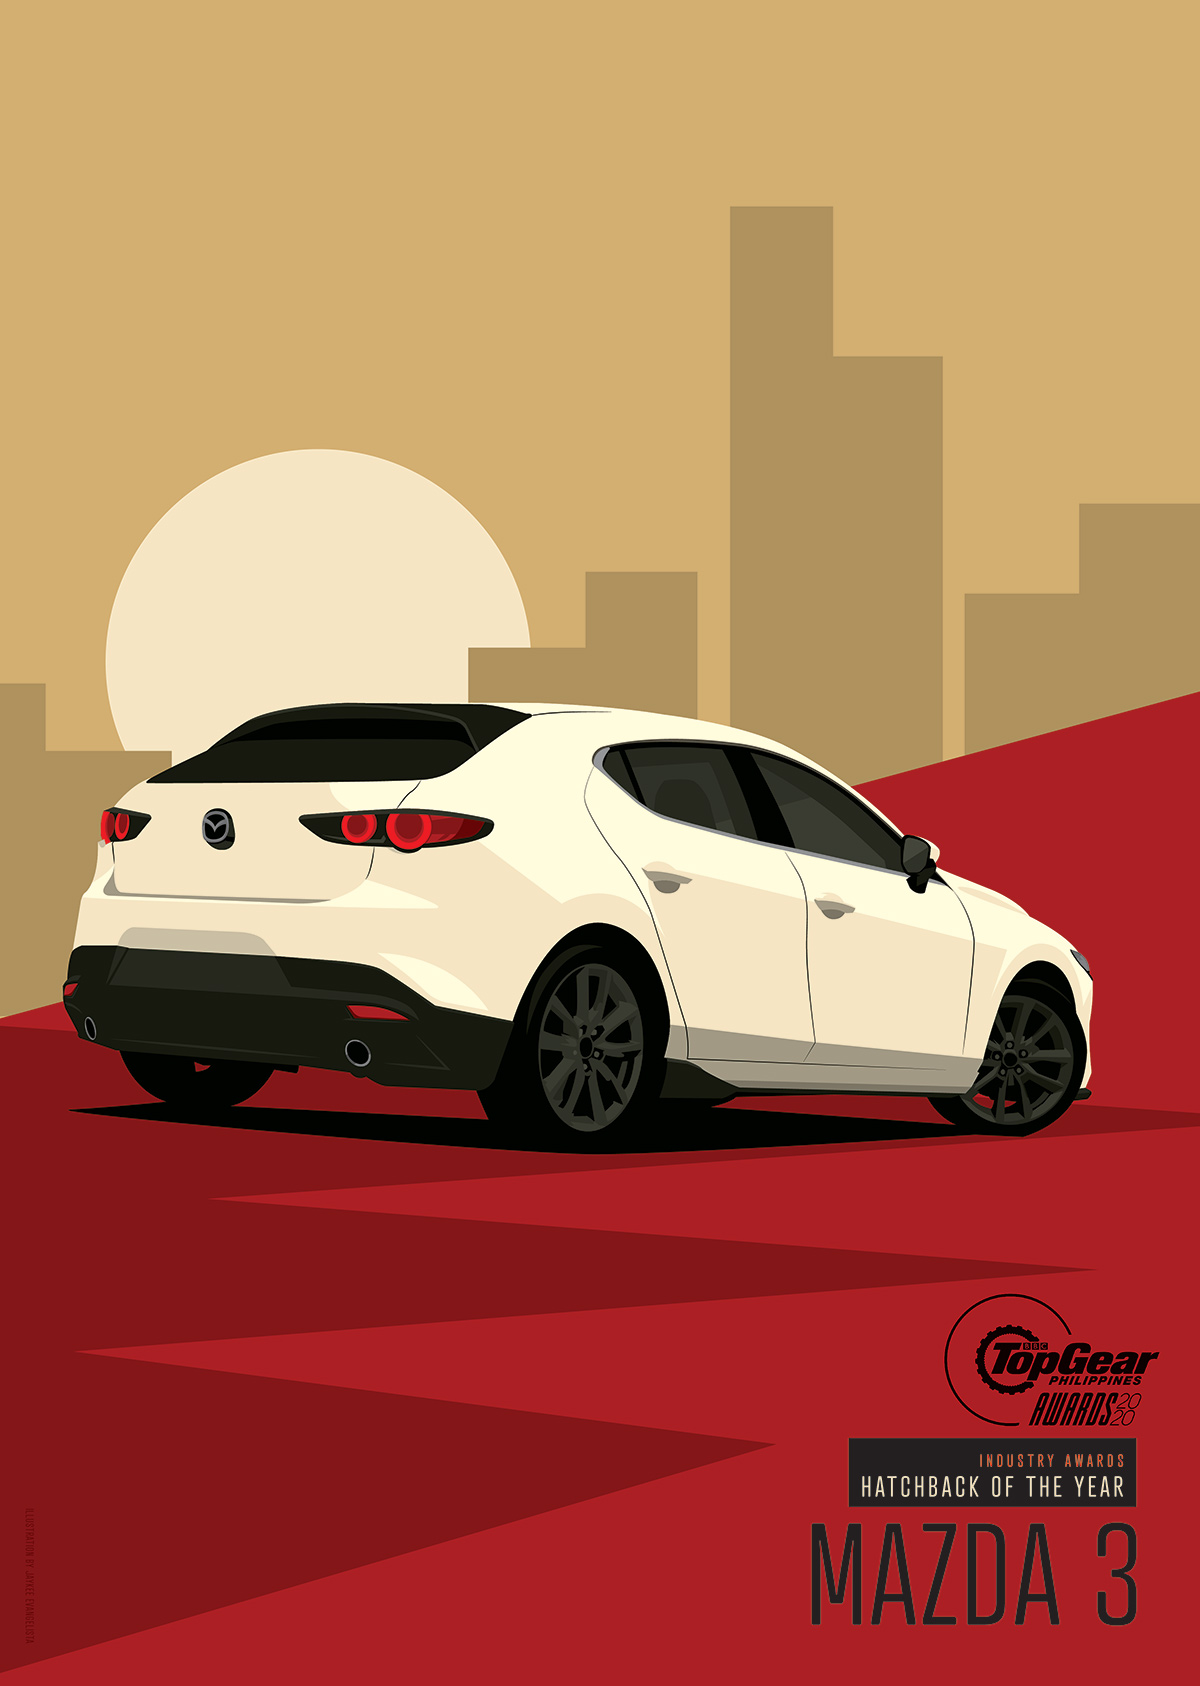 Top Gear Philippines' Hatchback of the Year – Mazda 3